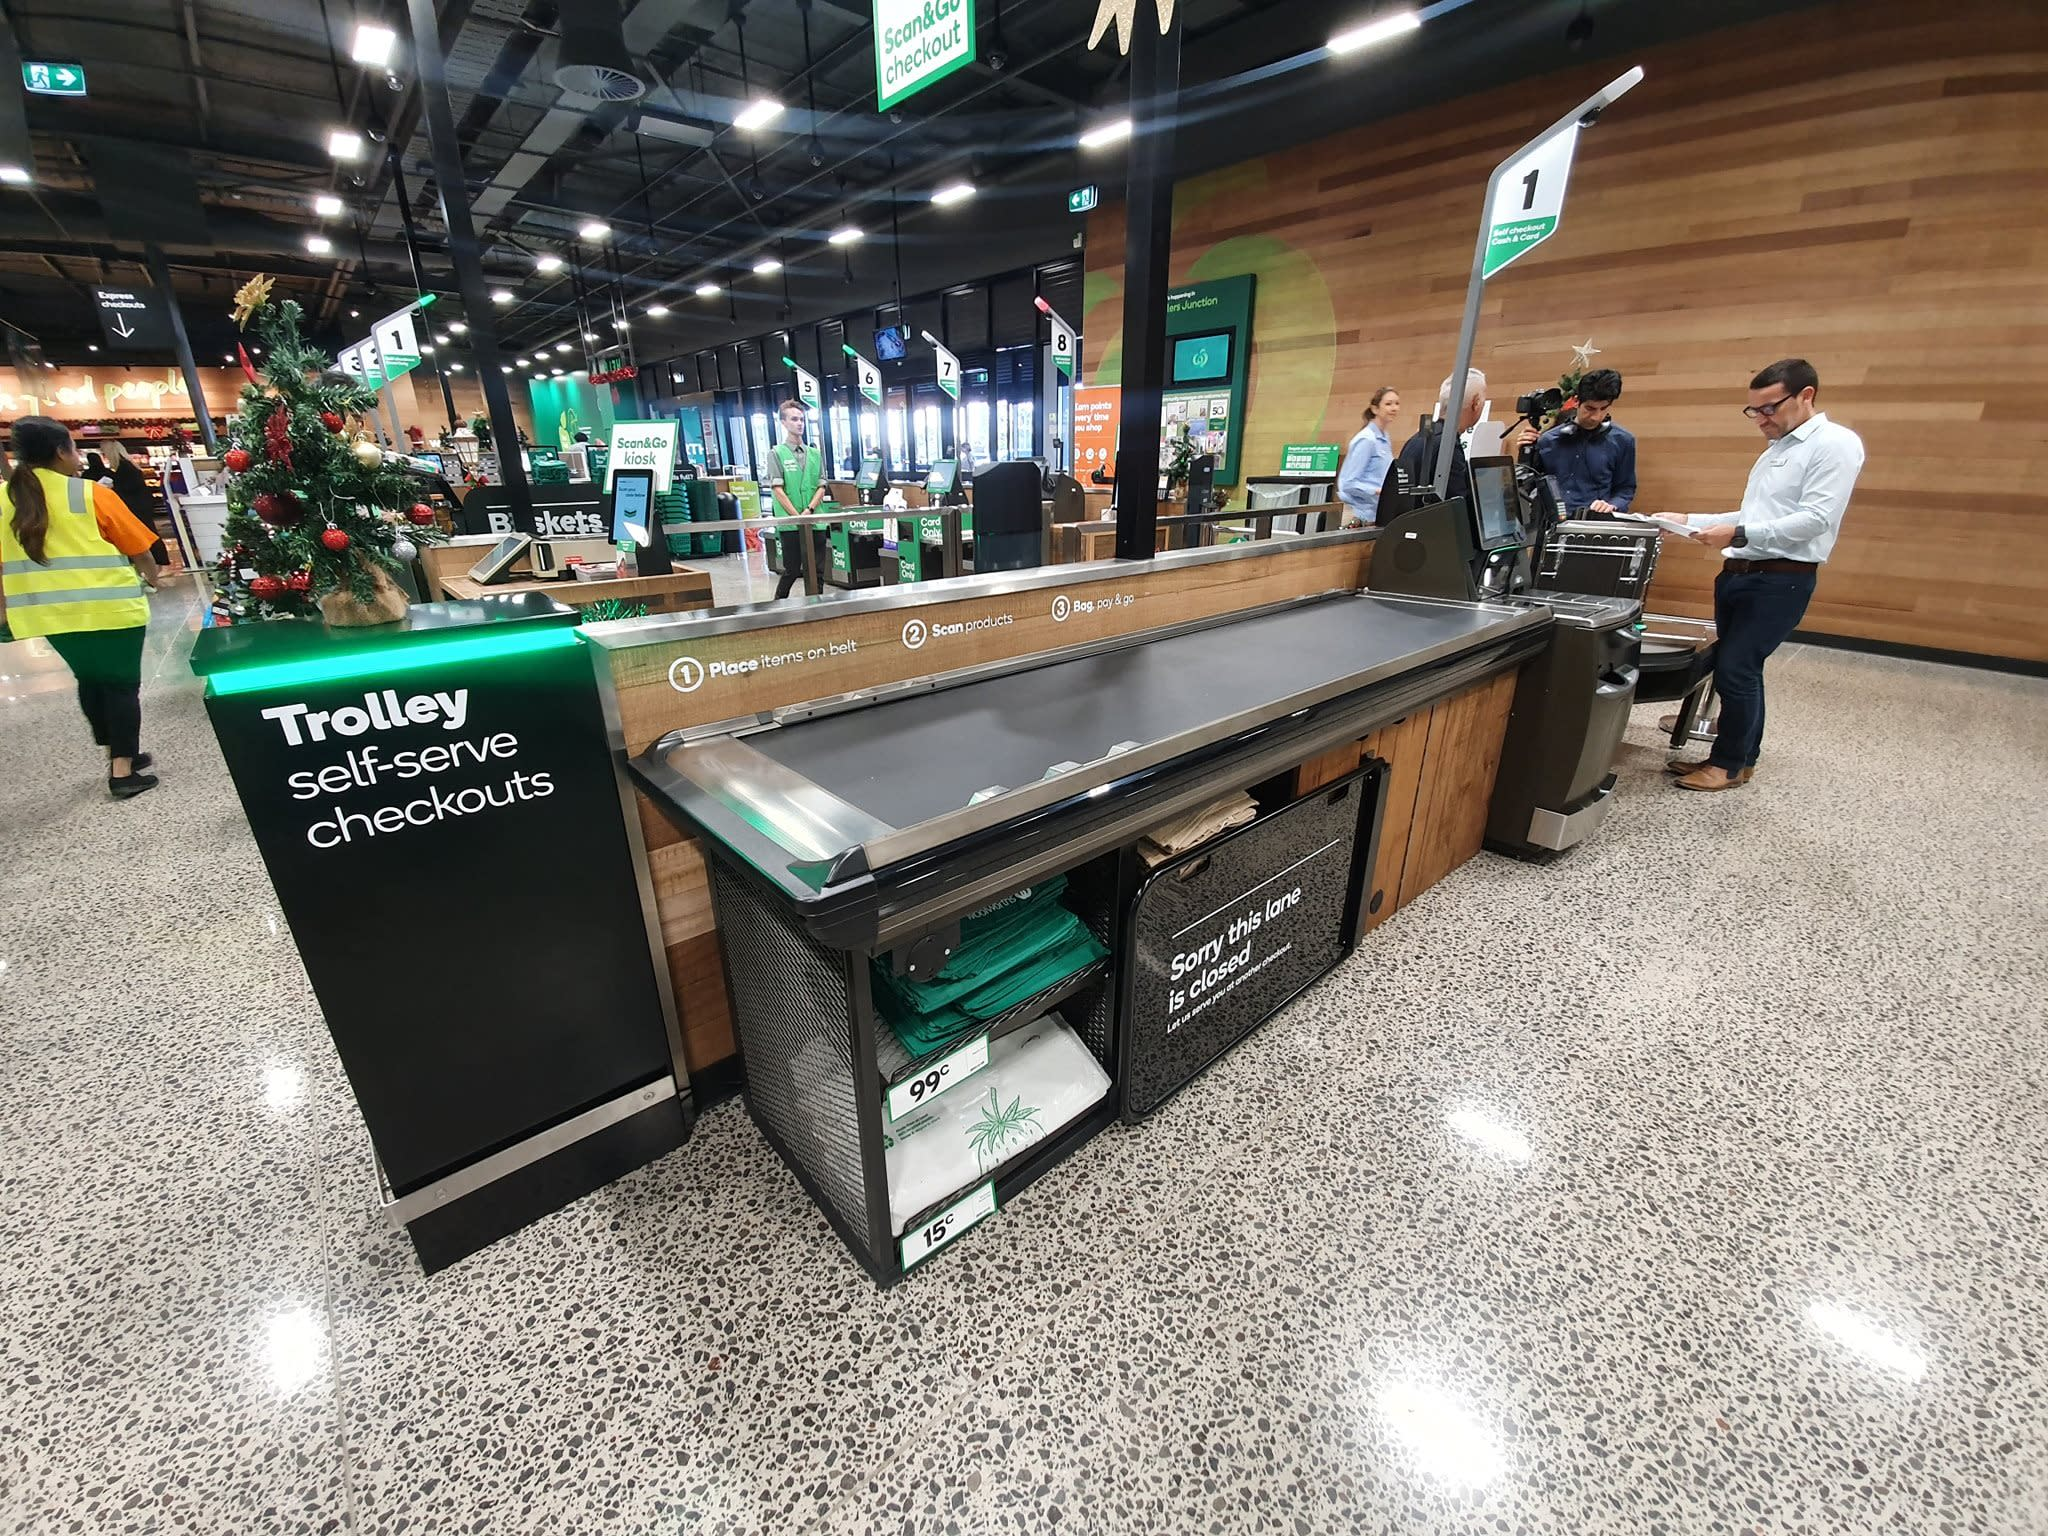 Woolworths reveals new ploy to solve self-serve checkout gripe